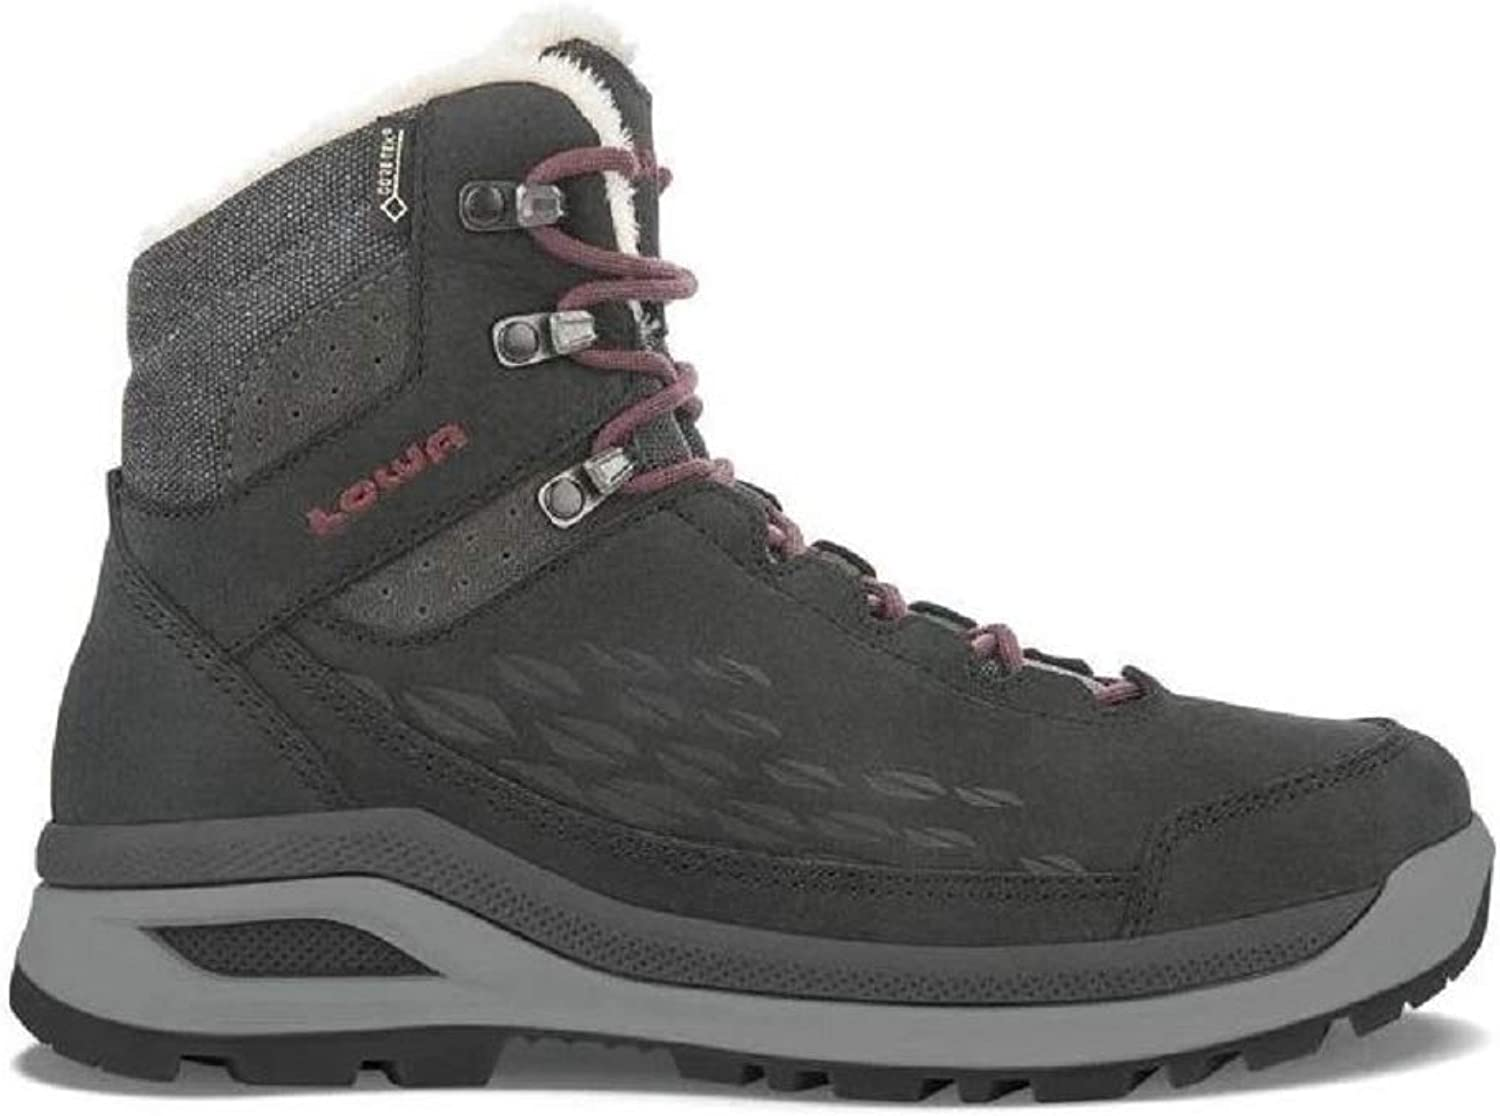 Lowa Women's Locarno Ice GTX Mid Winter Boot Anthracite